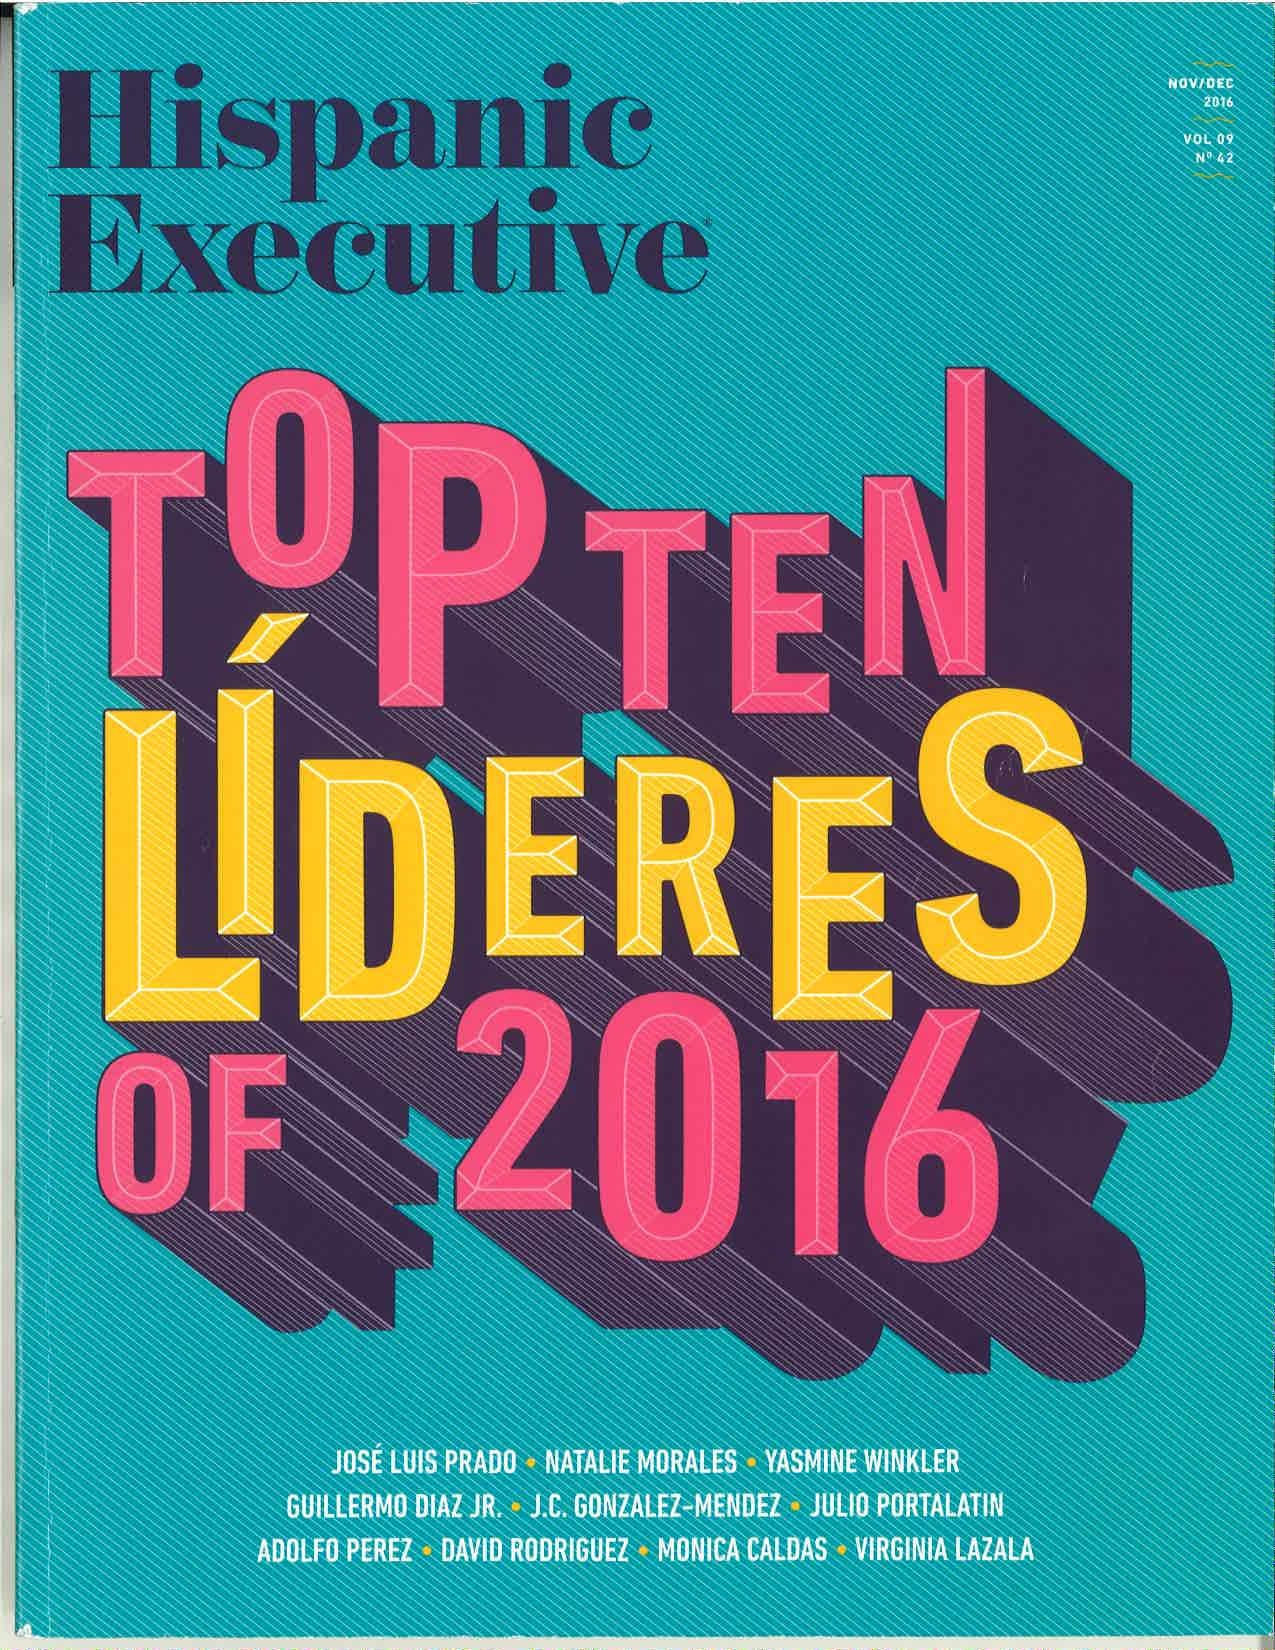 Carnival's VP of Sales and Trade Marketing Adolfo Perez Named to Hispanic Executive Magazine's List of Top Ten Leaders for 2016